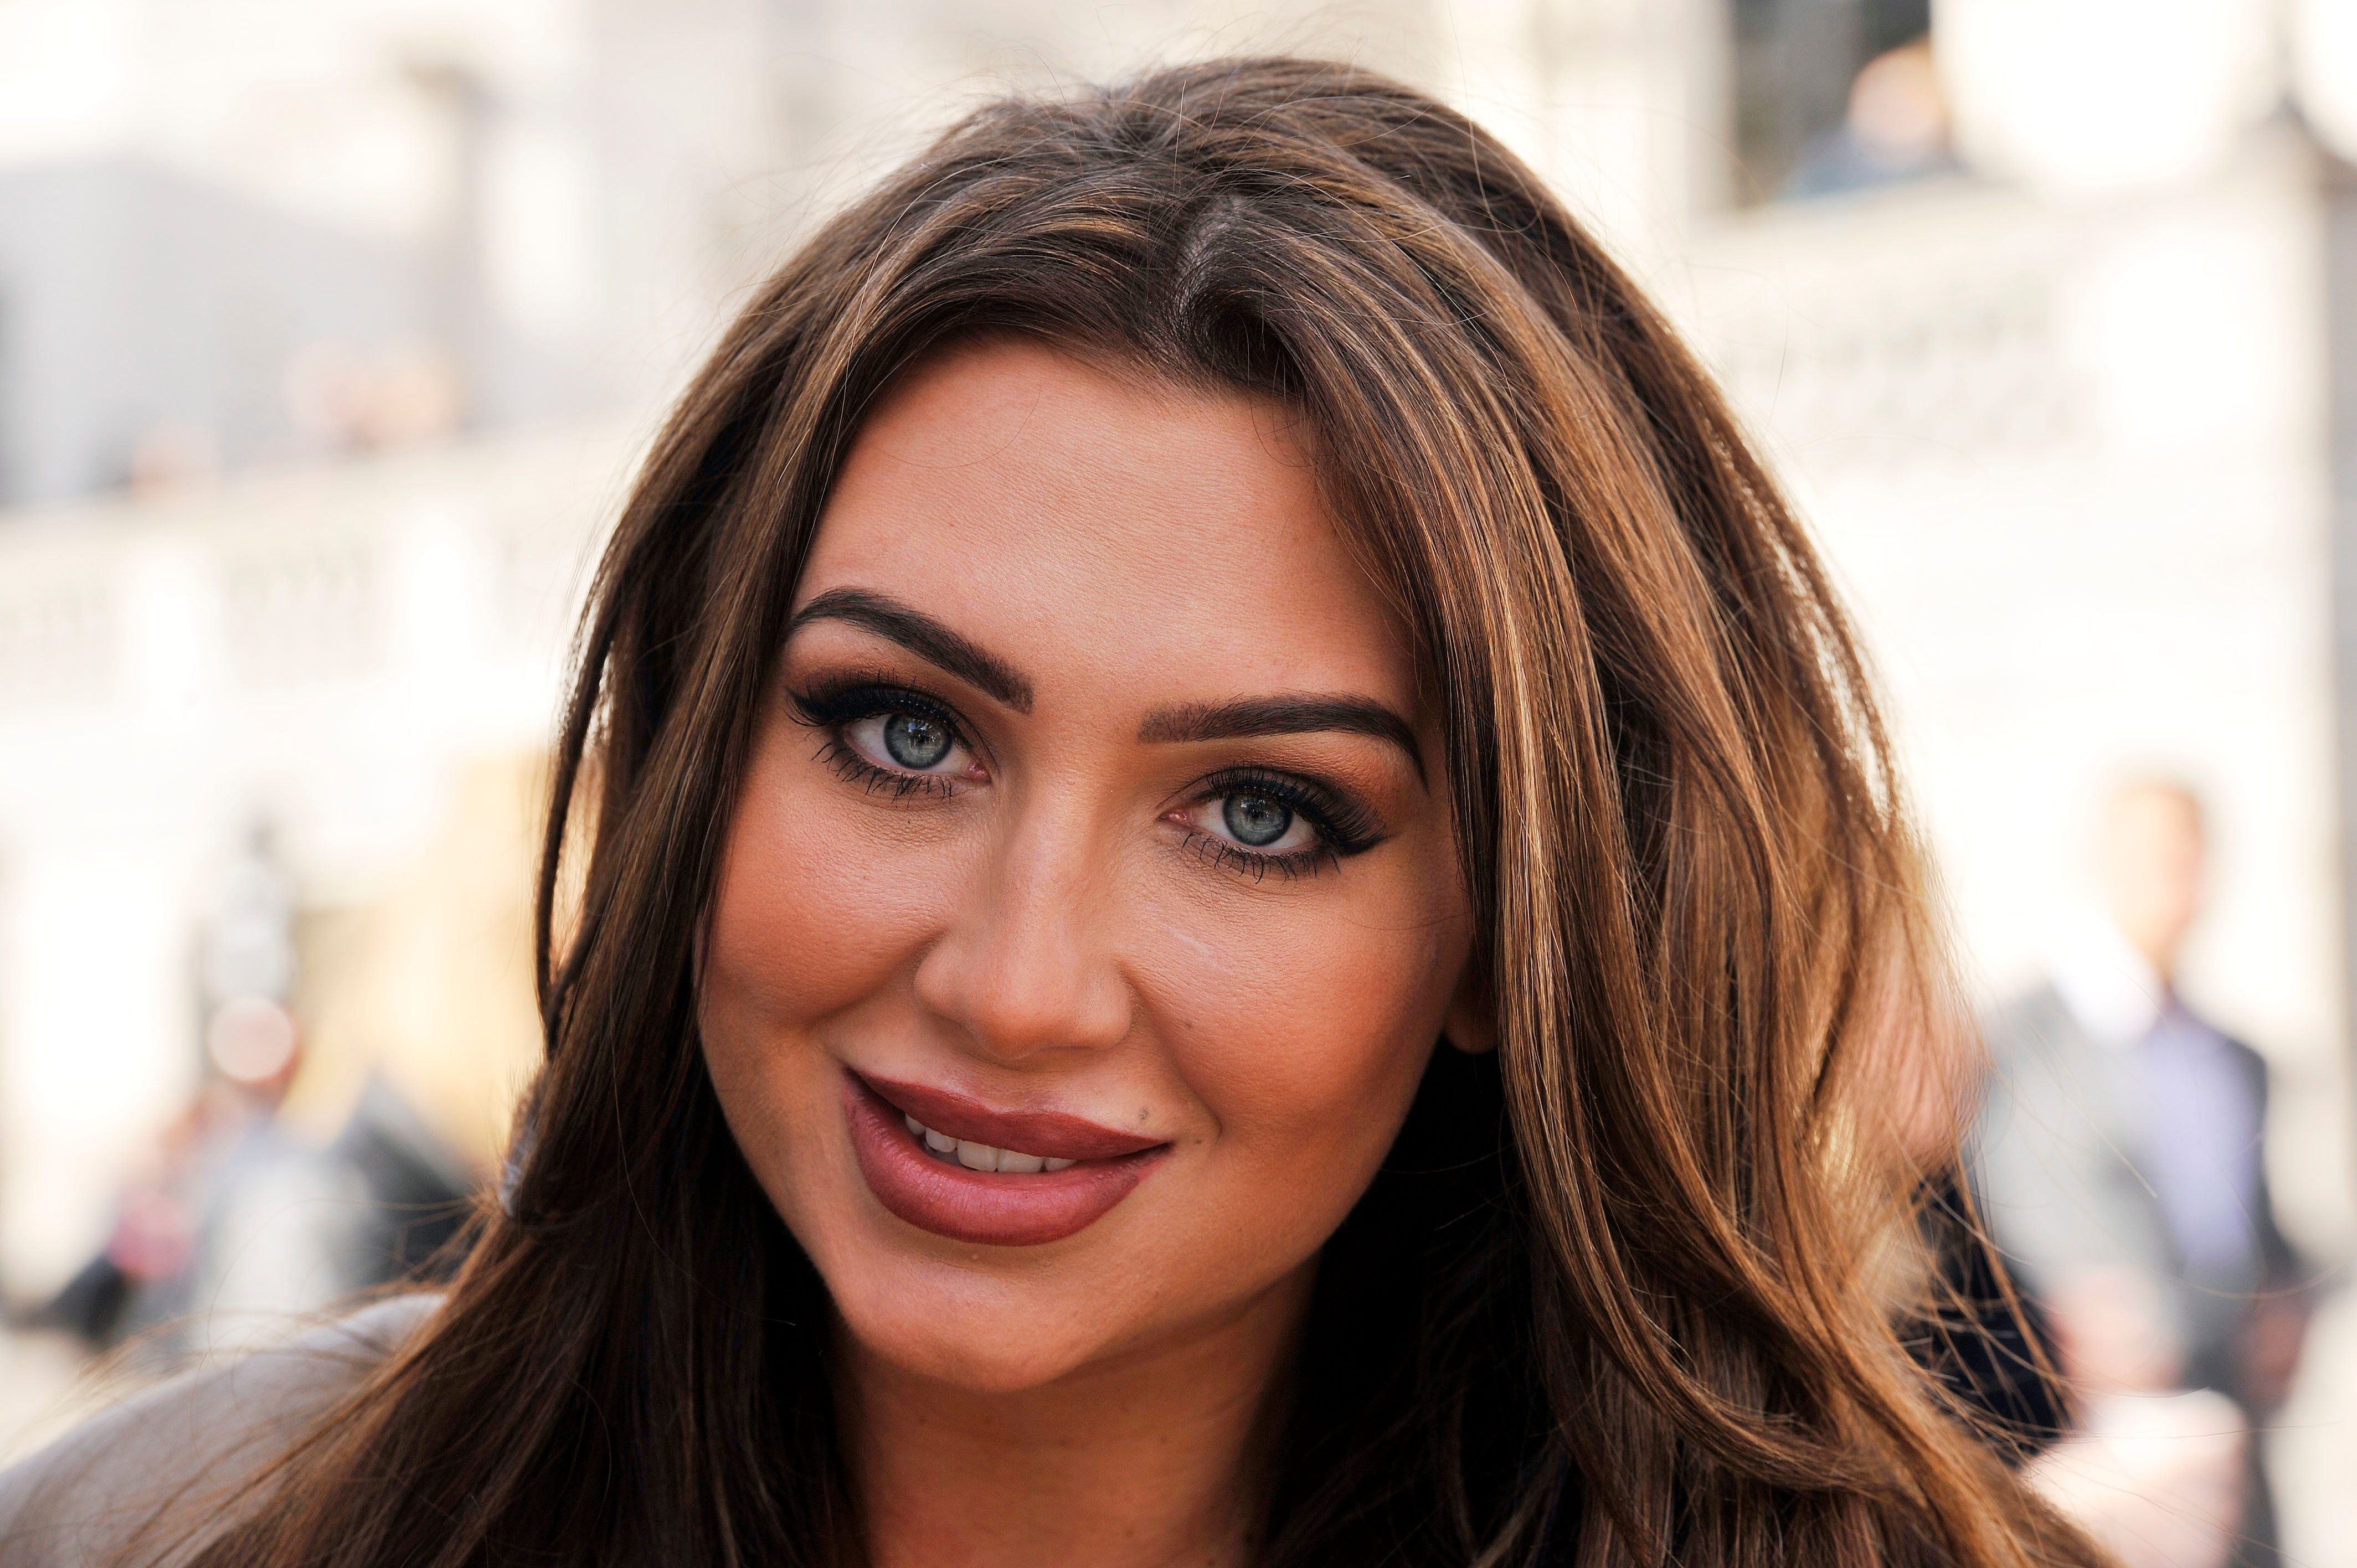 Lauren Goodger 'Investigated By The Police' Following Alleged Sugar Hut